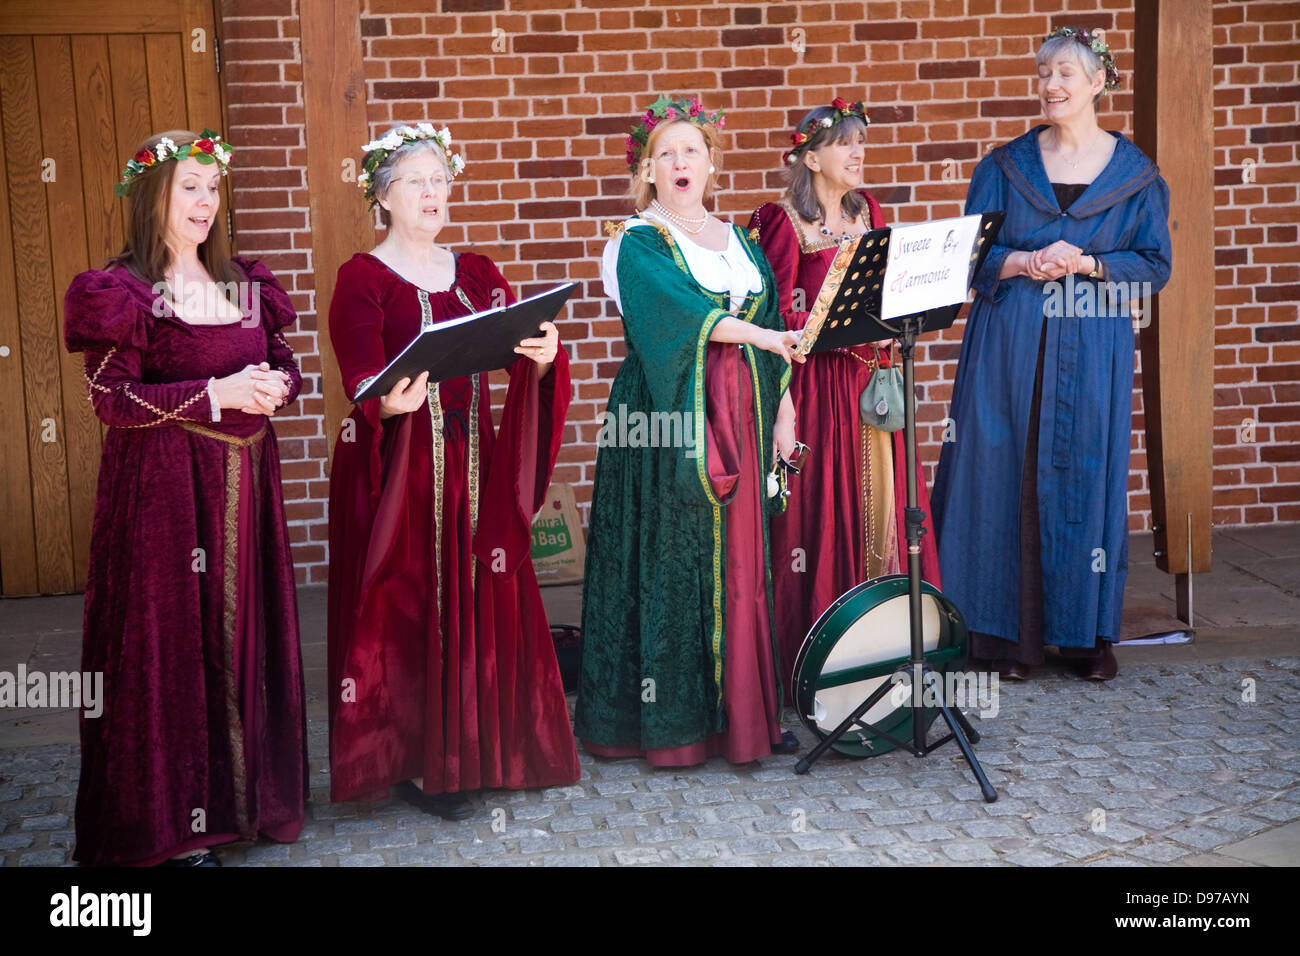 Sweet Harmonie female singing group in Tudor costume performing at Layer Marney Tower, Essex, England - Stock Image